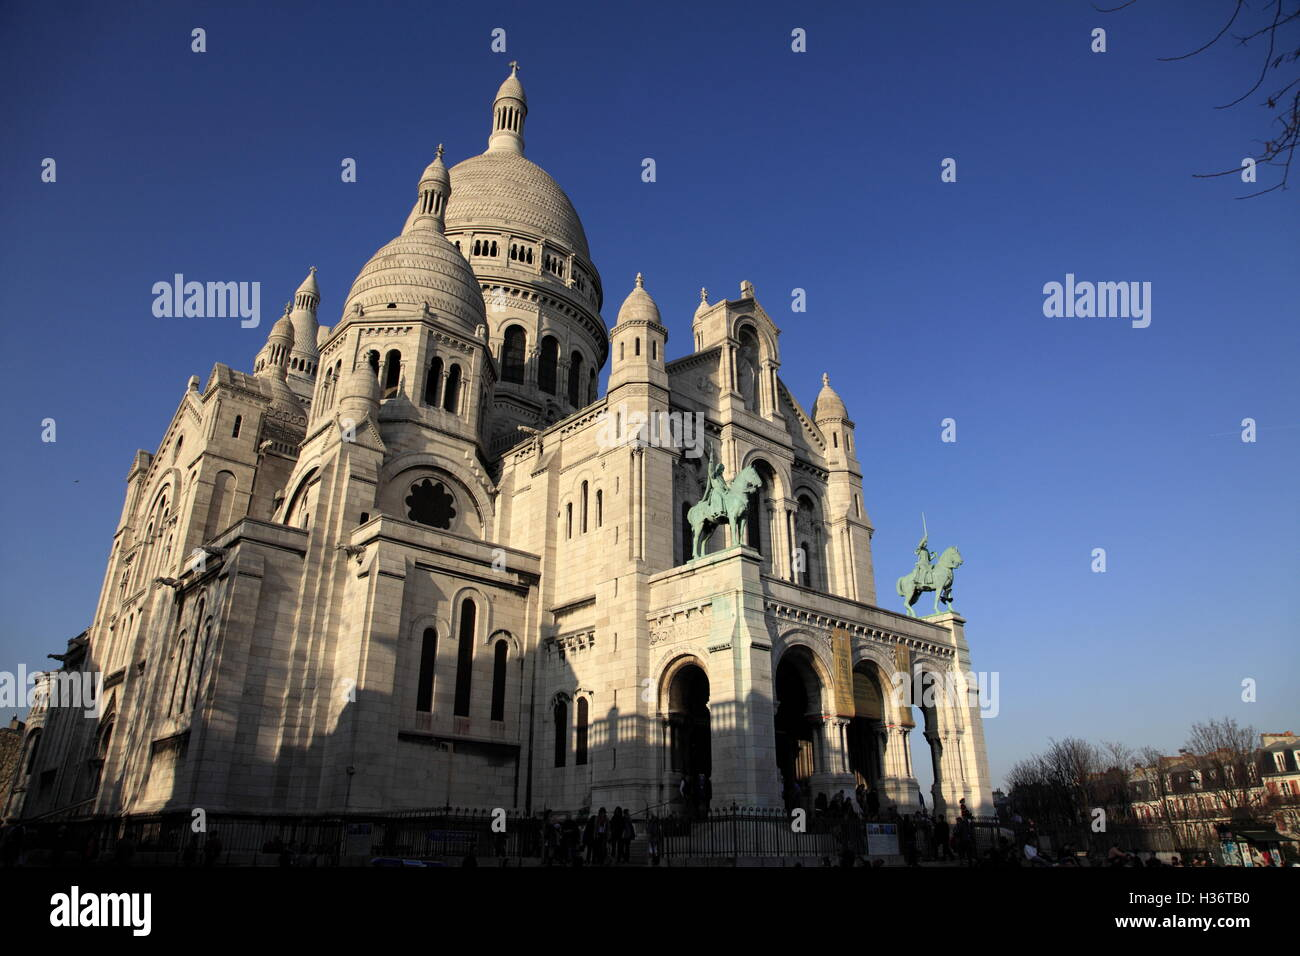 A closed up view of Basilica of the Sacre Coeur in Montmartre.Paris.France - Stock Image